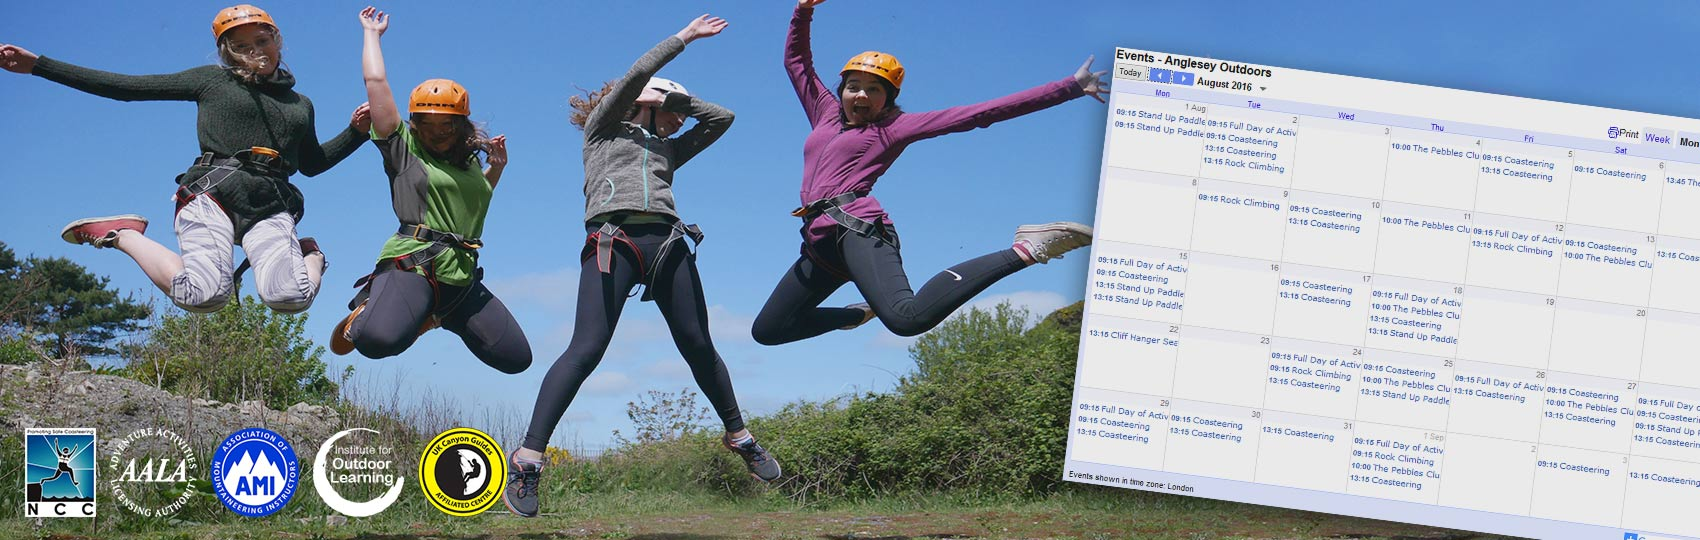 Booking planners and pricing for activities with Anglesey Outdoors